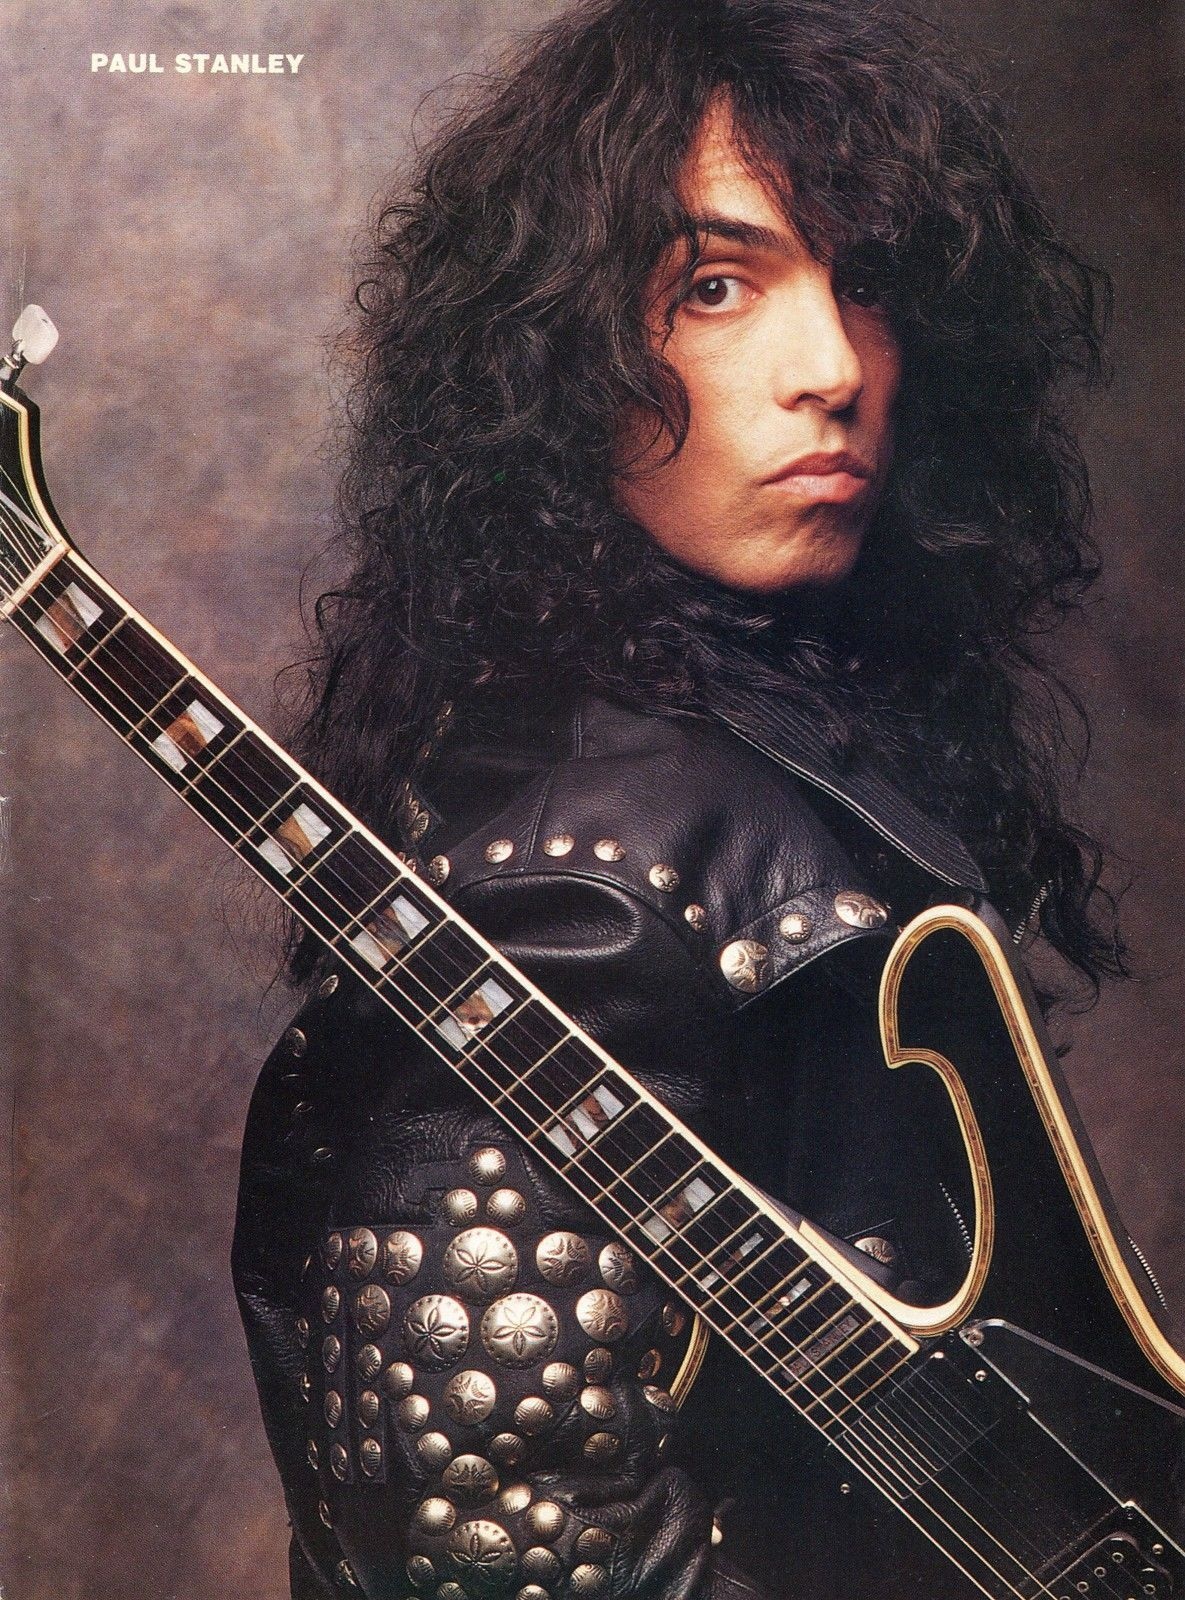 Paul Stanley Pinup clipping 90 039 s Guitar Kiss | eBay ...